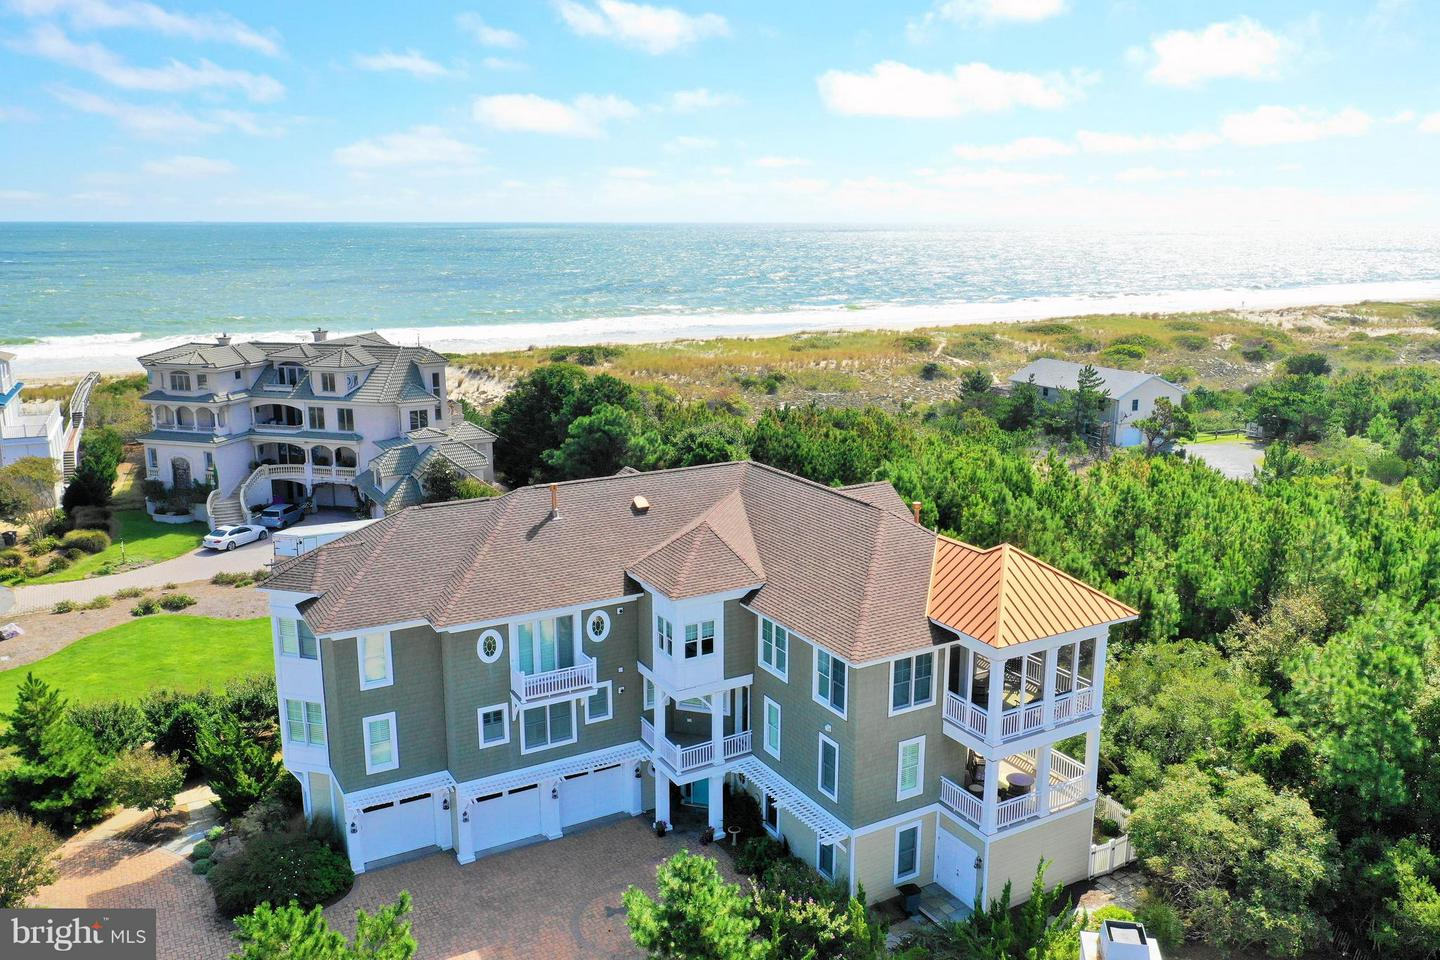 1002293530-300720130270-2018-09-25-15-08-25 31 Hall Ave | Rehoboth Beach, DE Real Estate For Sale | MLS# 1002293530  - 1st Choice Properties